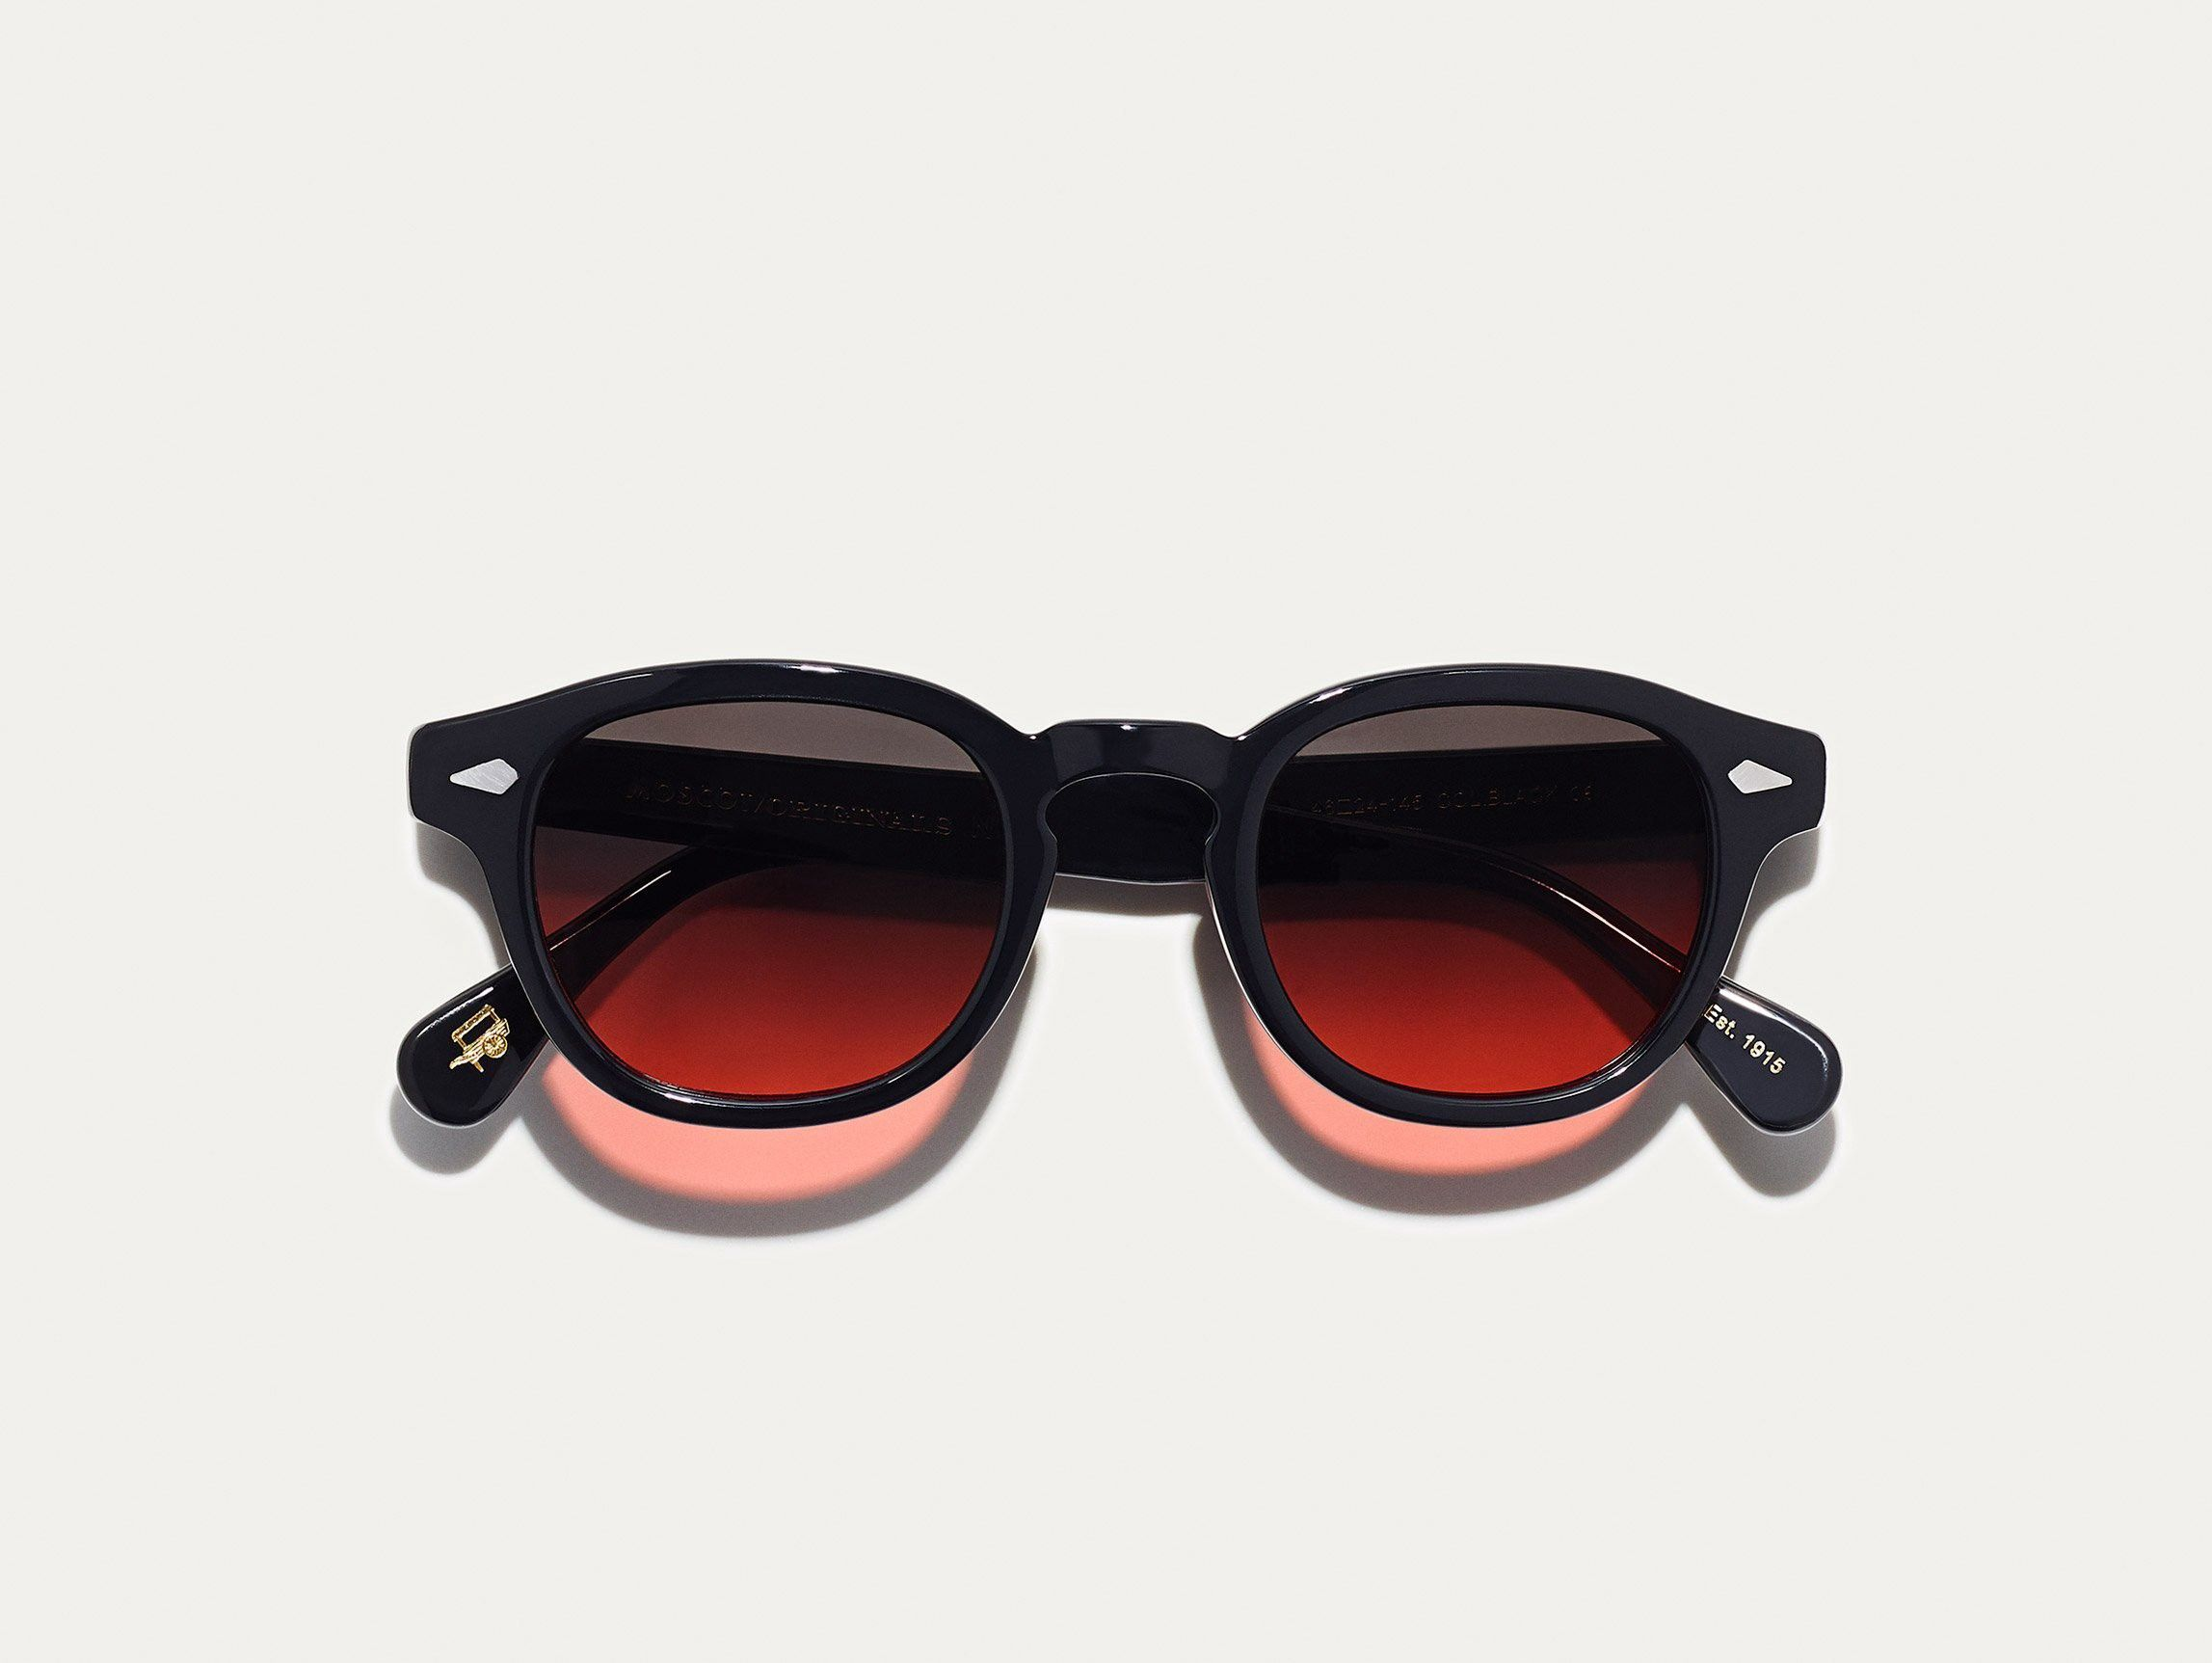 f15a3b6fe9 Moscot Lemtosh Black With Cabernet Tint - 44 | Products | Black ...